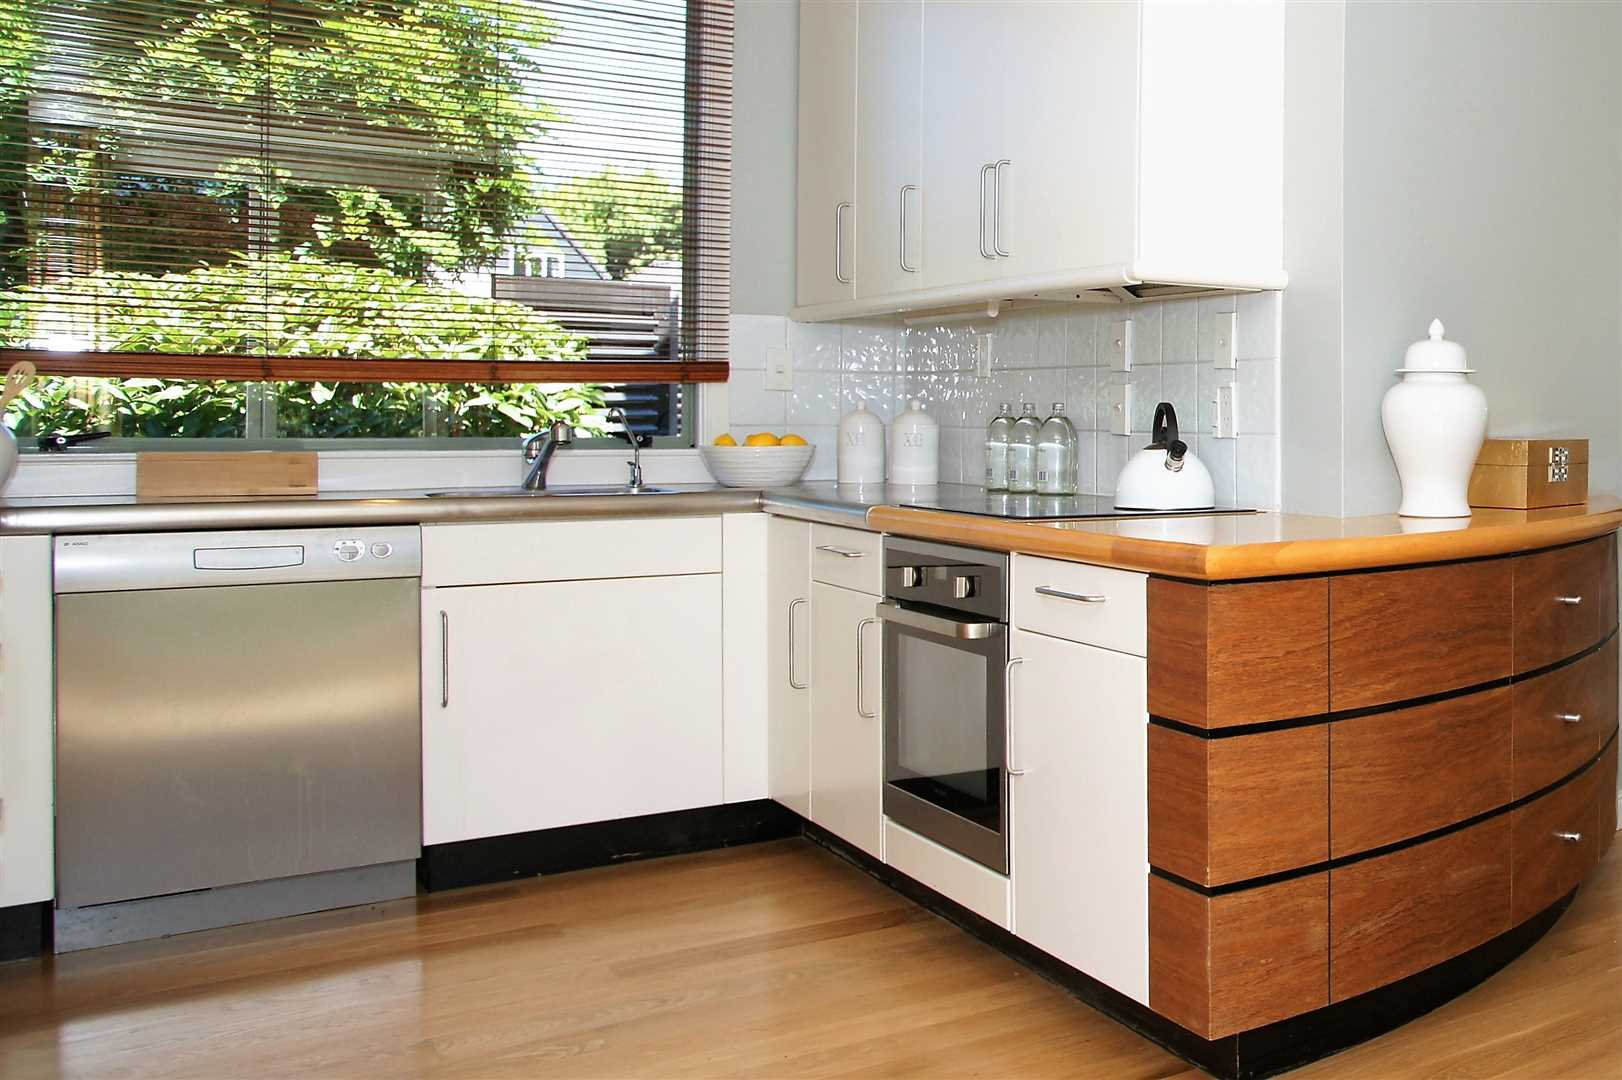 A kitchen with curve appeal